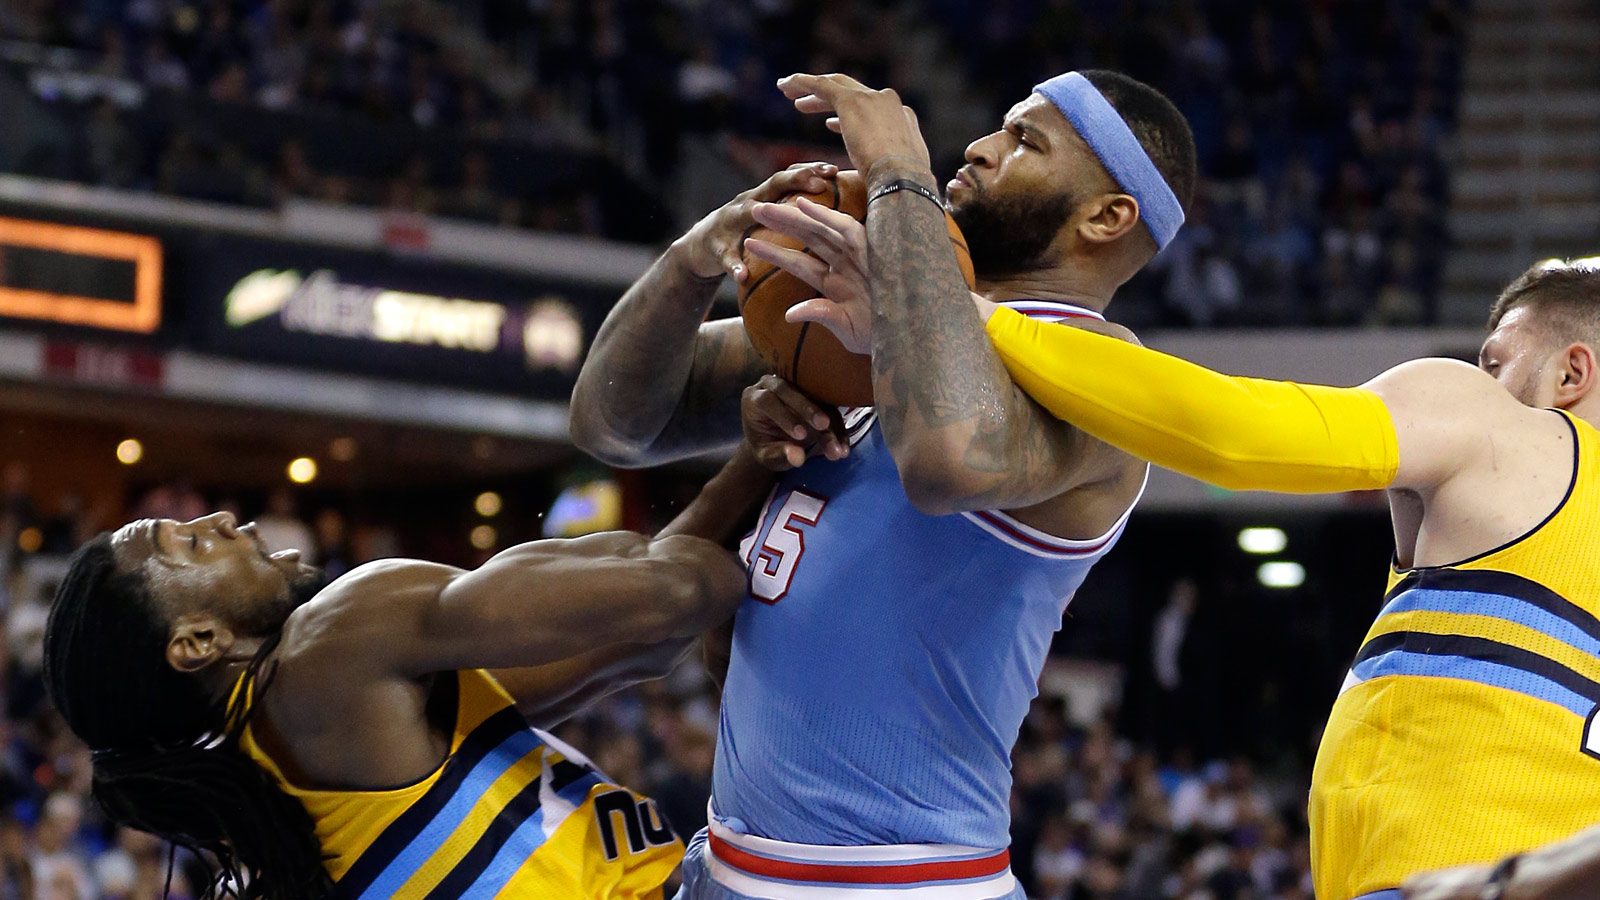 DeMarcus Cousins explodes for 37 points, 20 rebounds in Kings' win